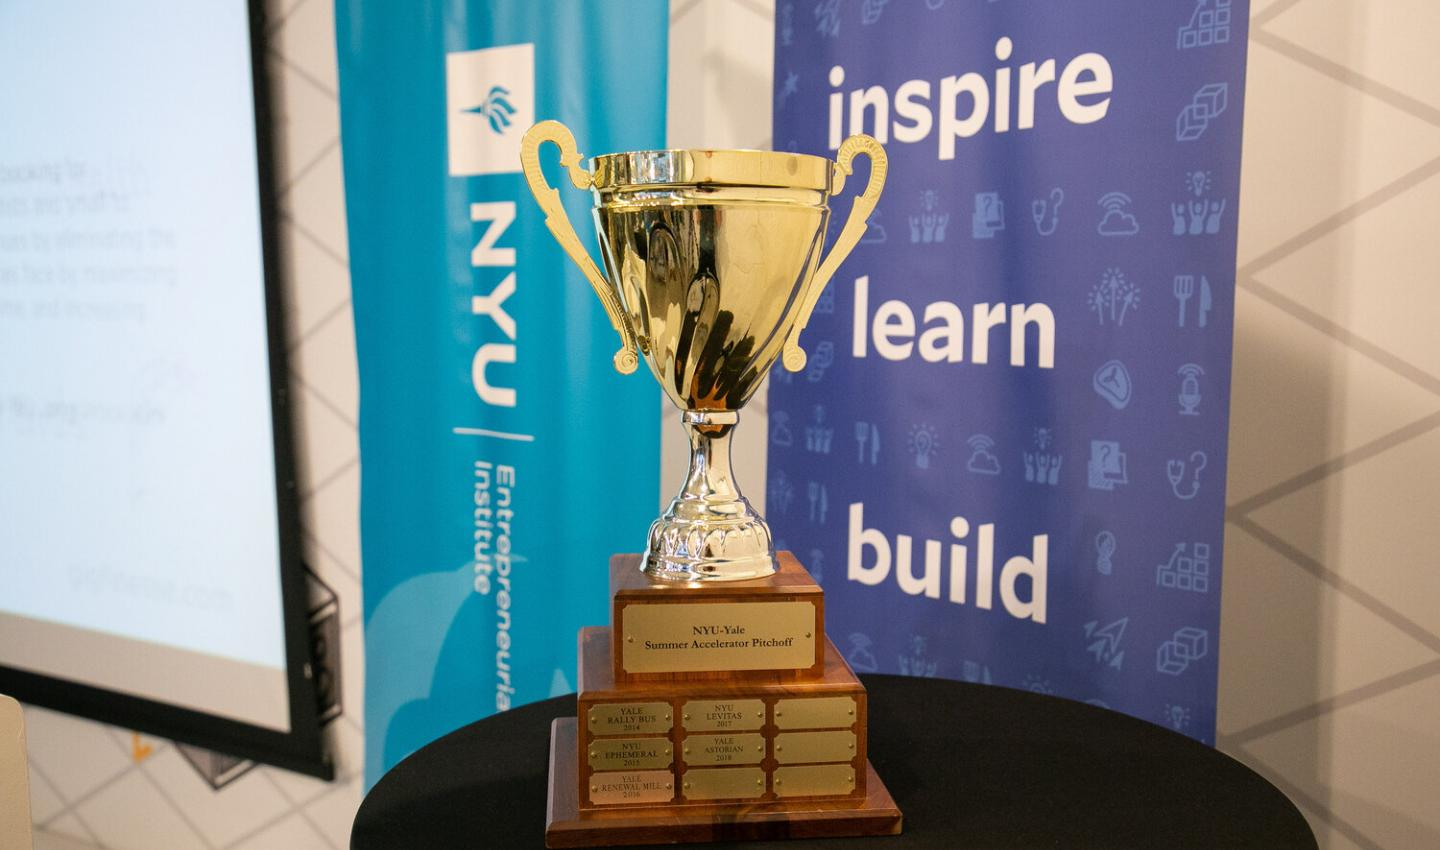 Yale Student Venture Bild Wins 7th Annual Nyu Yale Pitchoff Tsai City